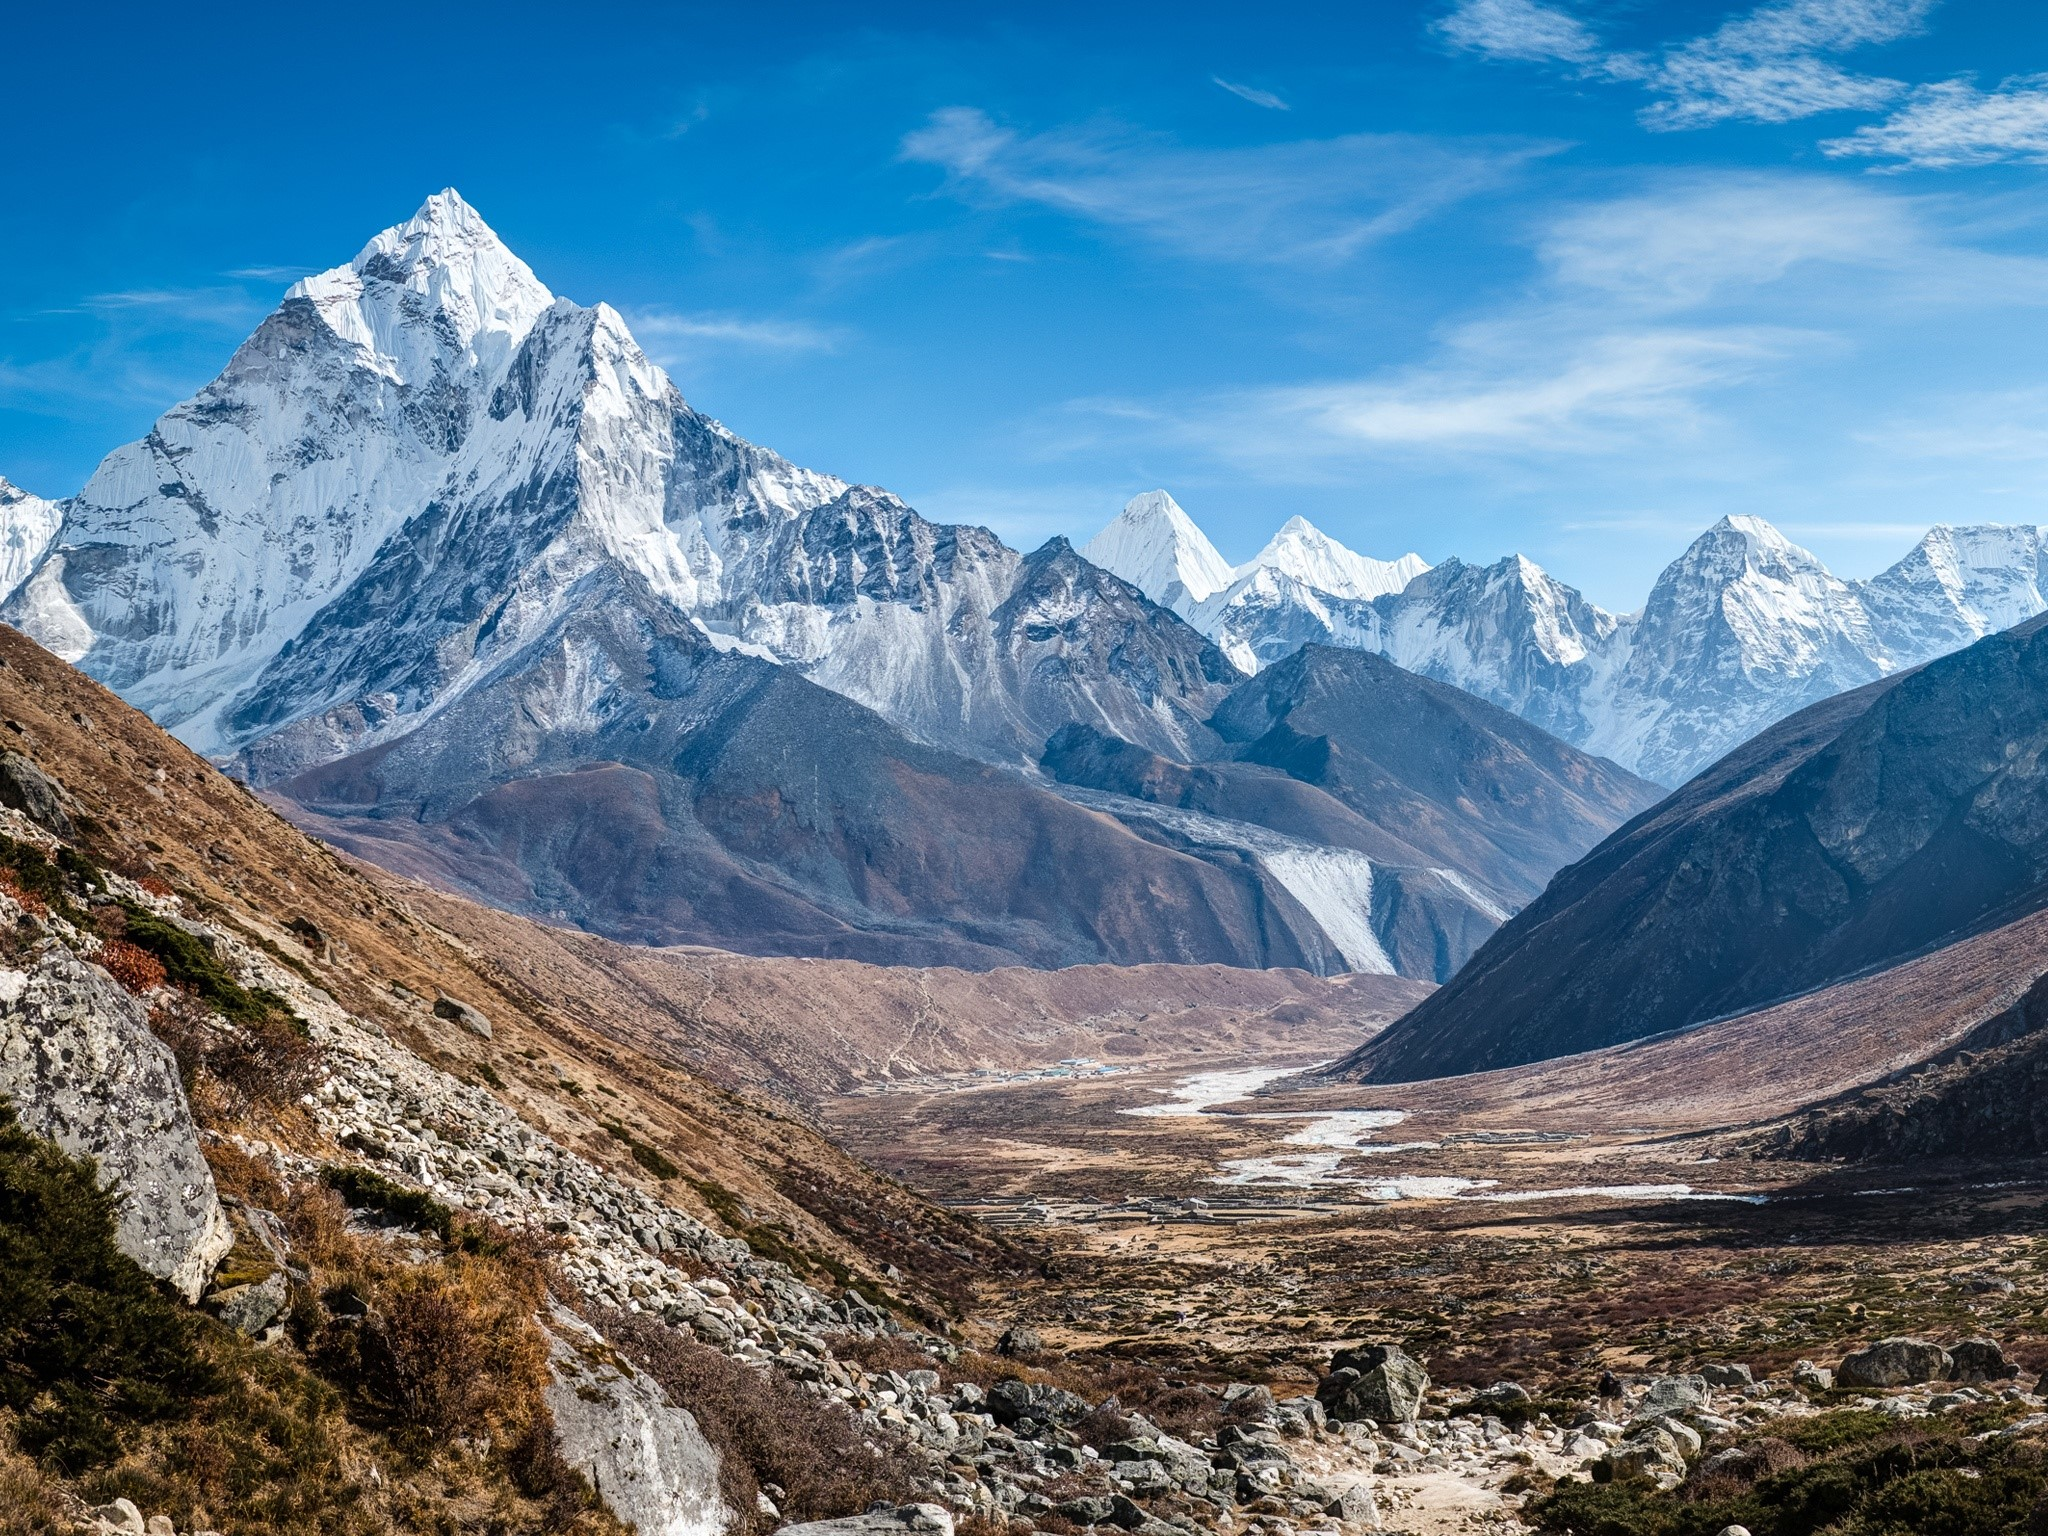 Wallpaper Ama Dablam mountains in the Himalayas